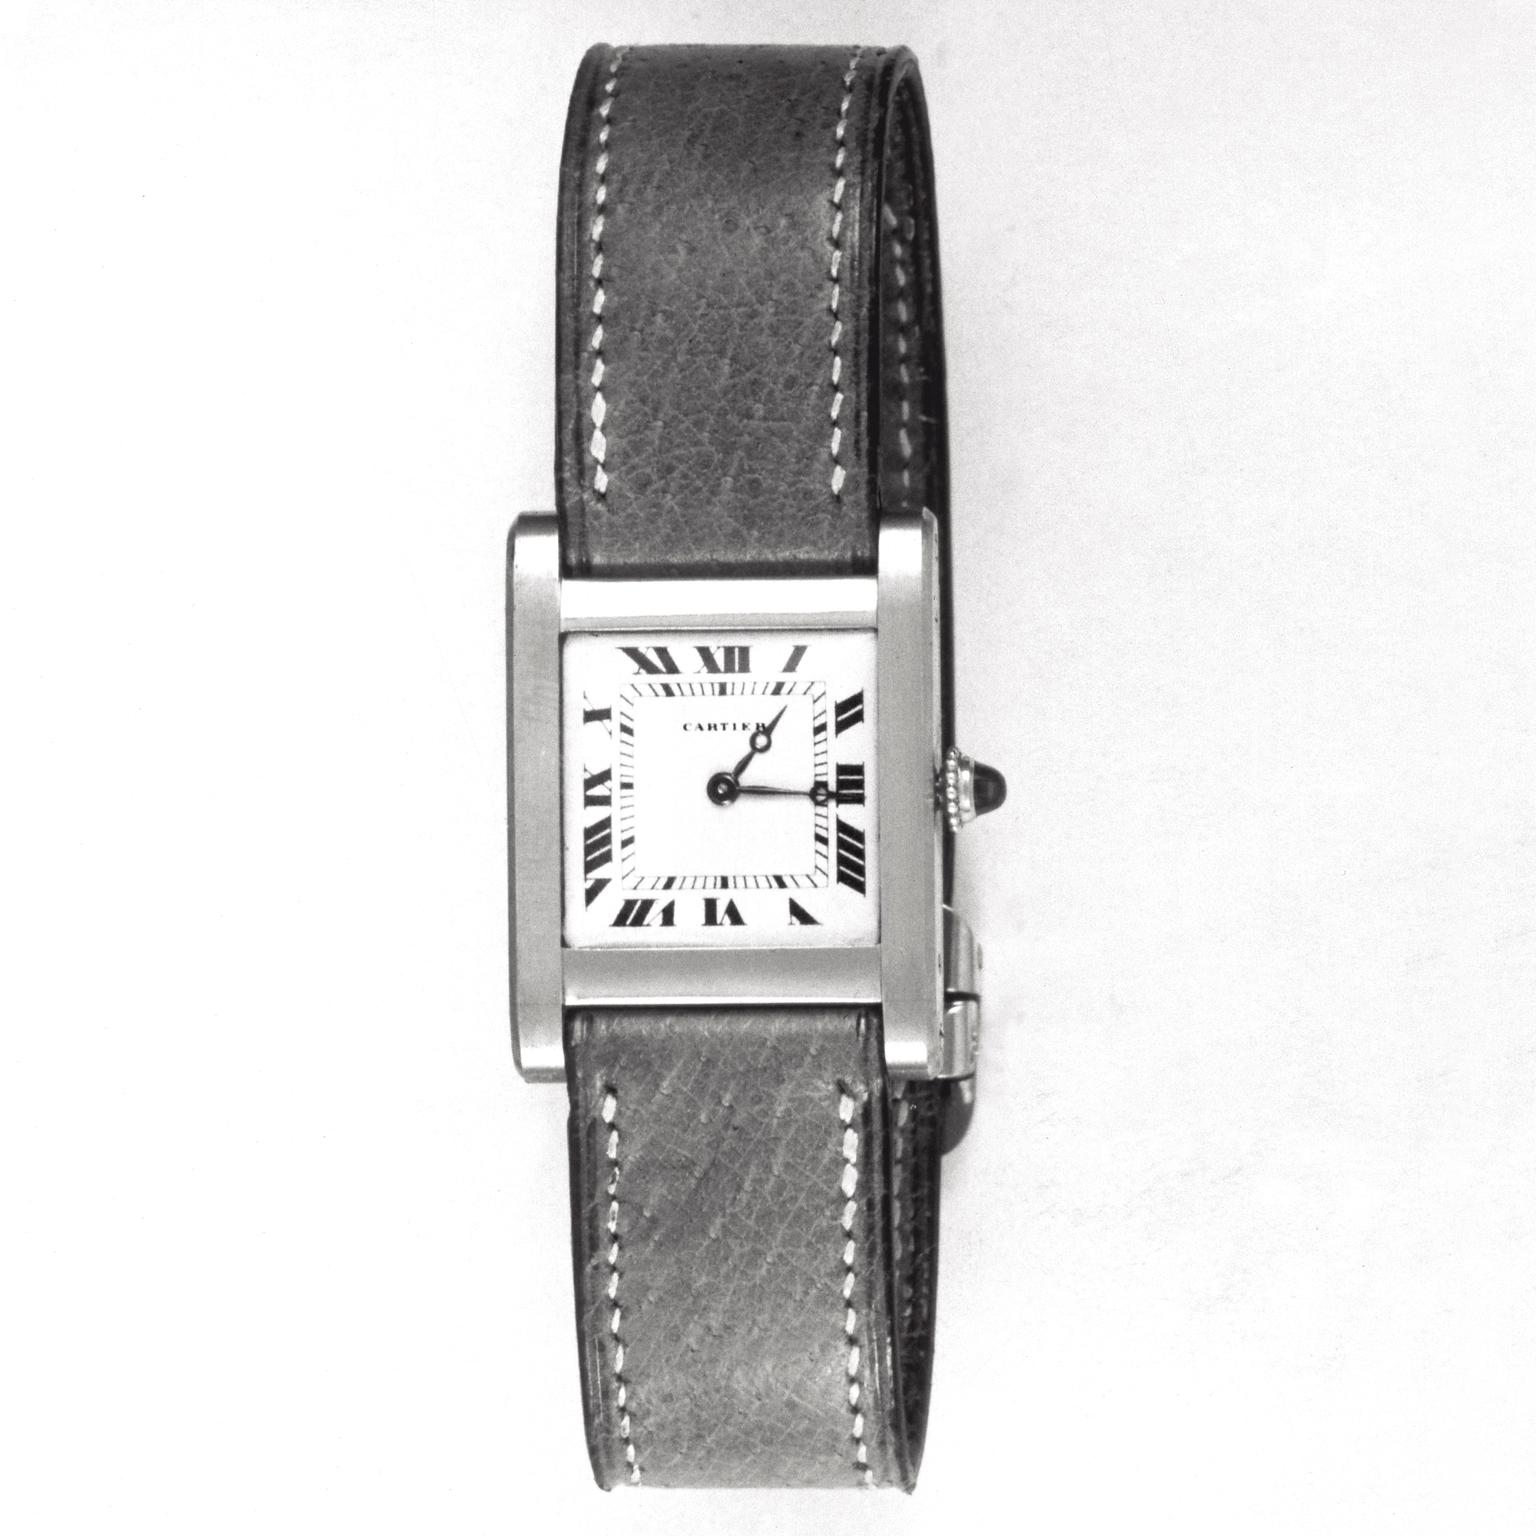 Cartier Tank 1919 watch - Cartier Archives